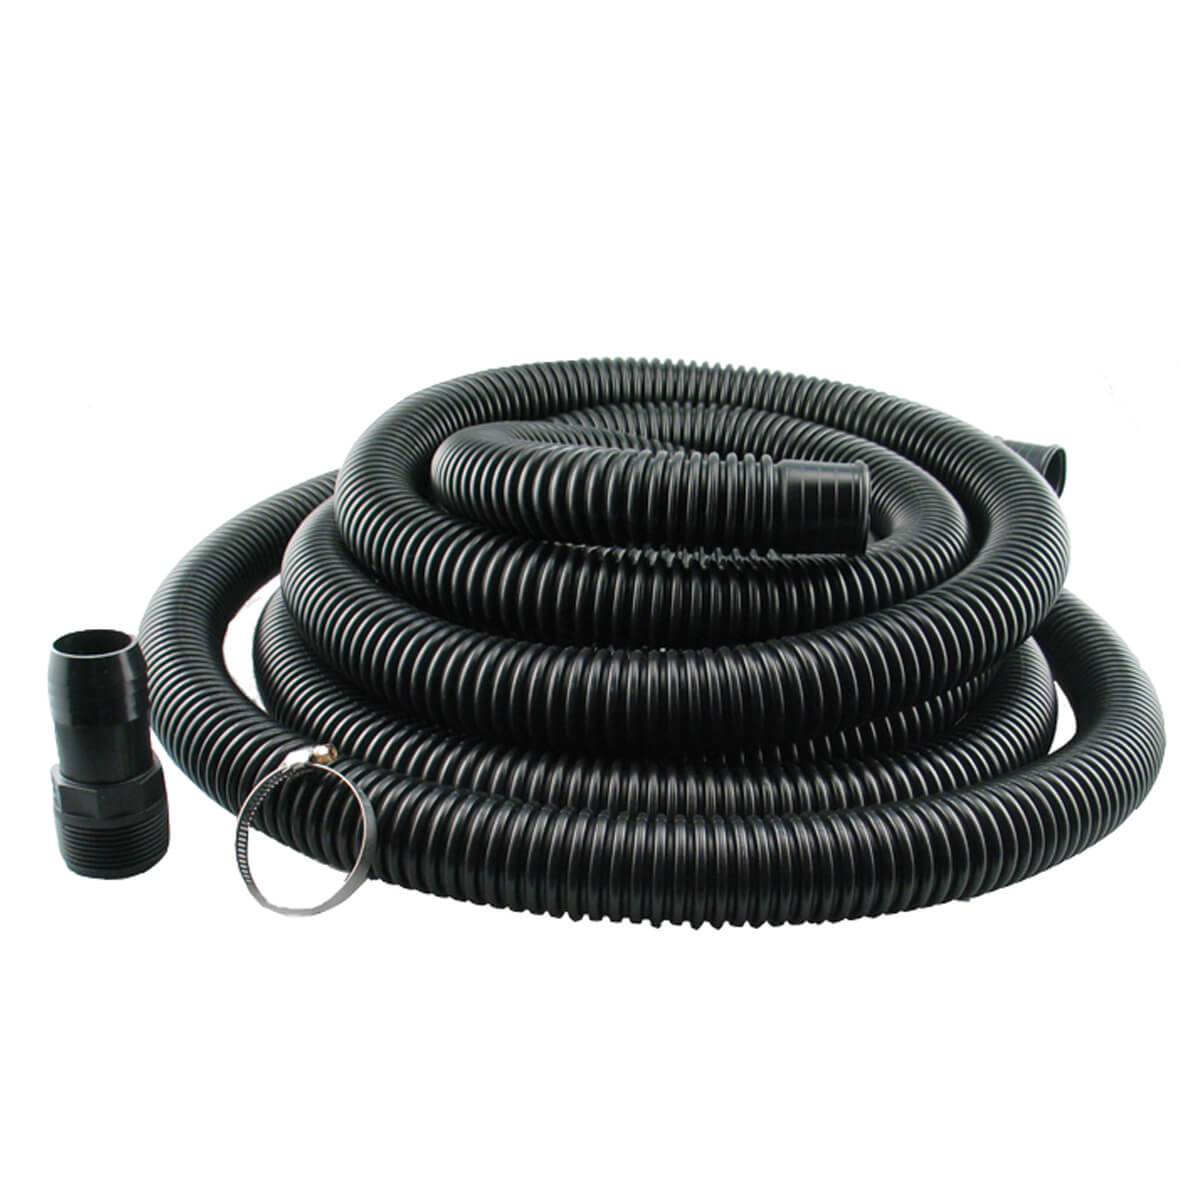 "Sump Pump Discharge Kit - 1-1/4"" x 24'"